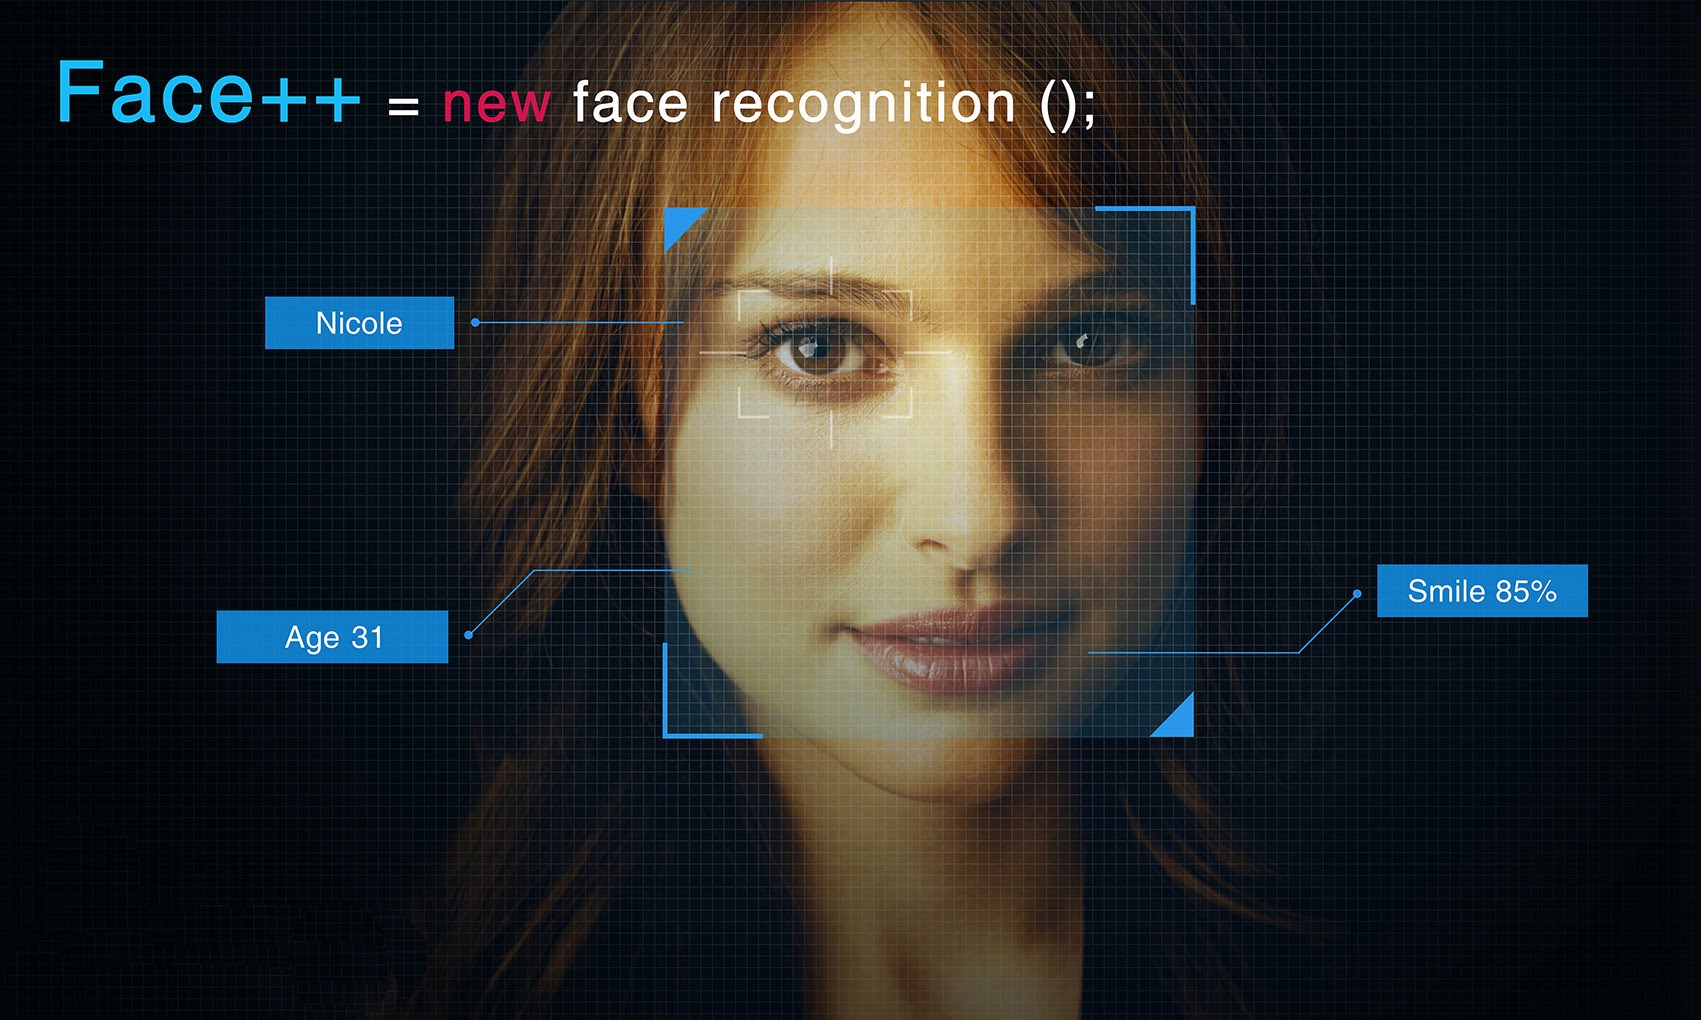 Image Recognition and Image Processing Techniques